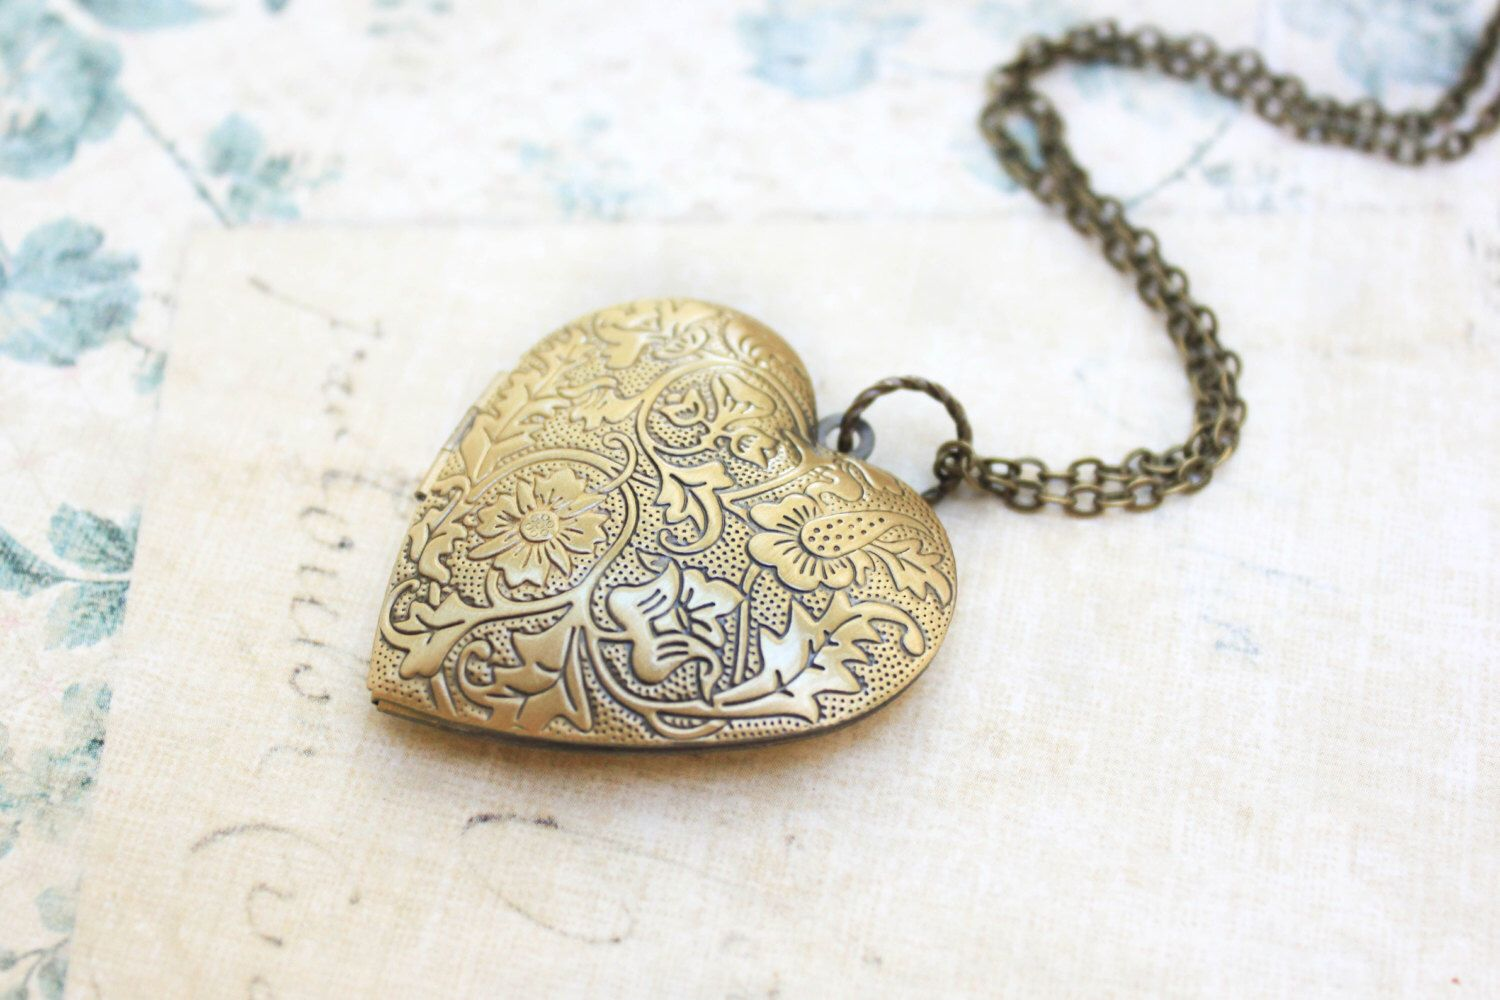 Large Heart Locket Necklace Gold Floral Locket Pendant Vintage Style Picture Locket Romantic Long Necklace Valentines Day Gift Keepsake by apocketofposies on Etsy https://www.etsy.com/listing/169465082/large-heart-locket-necklace-gold-floral